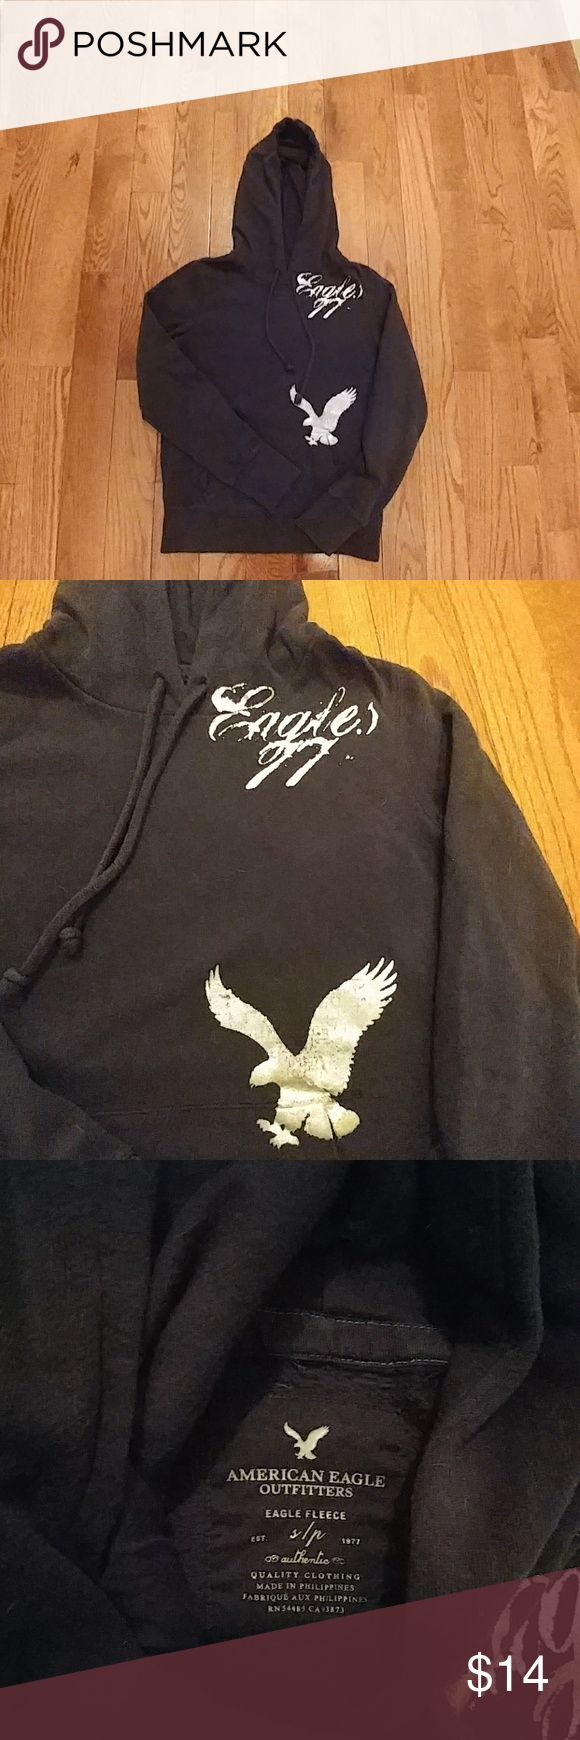 American Eagle Sweatshirt AE Rare Navy Blue w Silver Eagle And Silver Writing. Preloved but Good Condition. Worn Very Few Times. Great for Spring American Eagle Outfitters Tops Sweatshirts & Hoodies